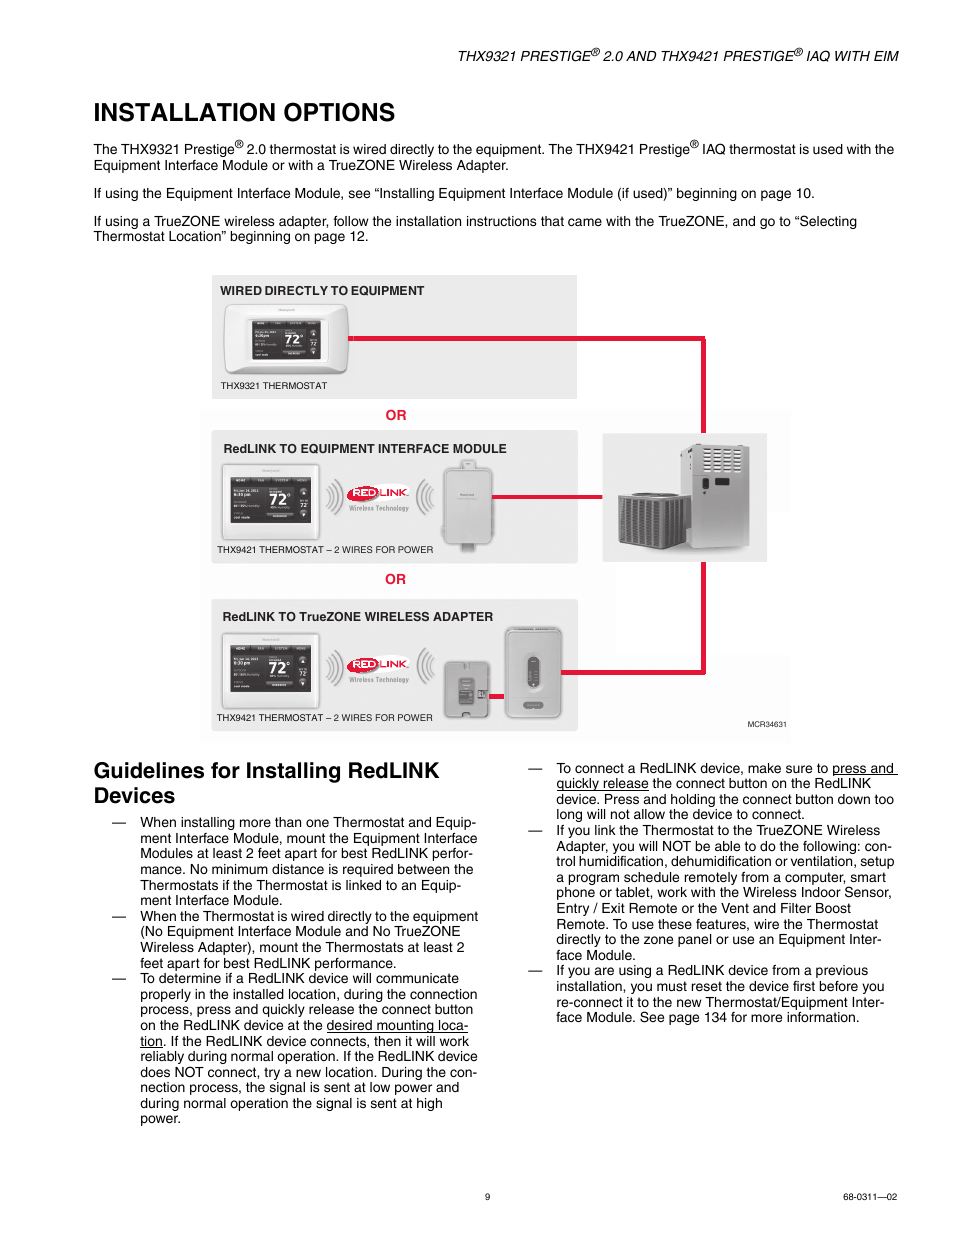 Installation options, Guidelines for installing redlink devices | Honeywell  PRESTIGE THX9321 User Manual | Page